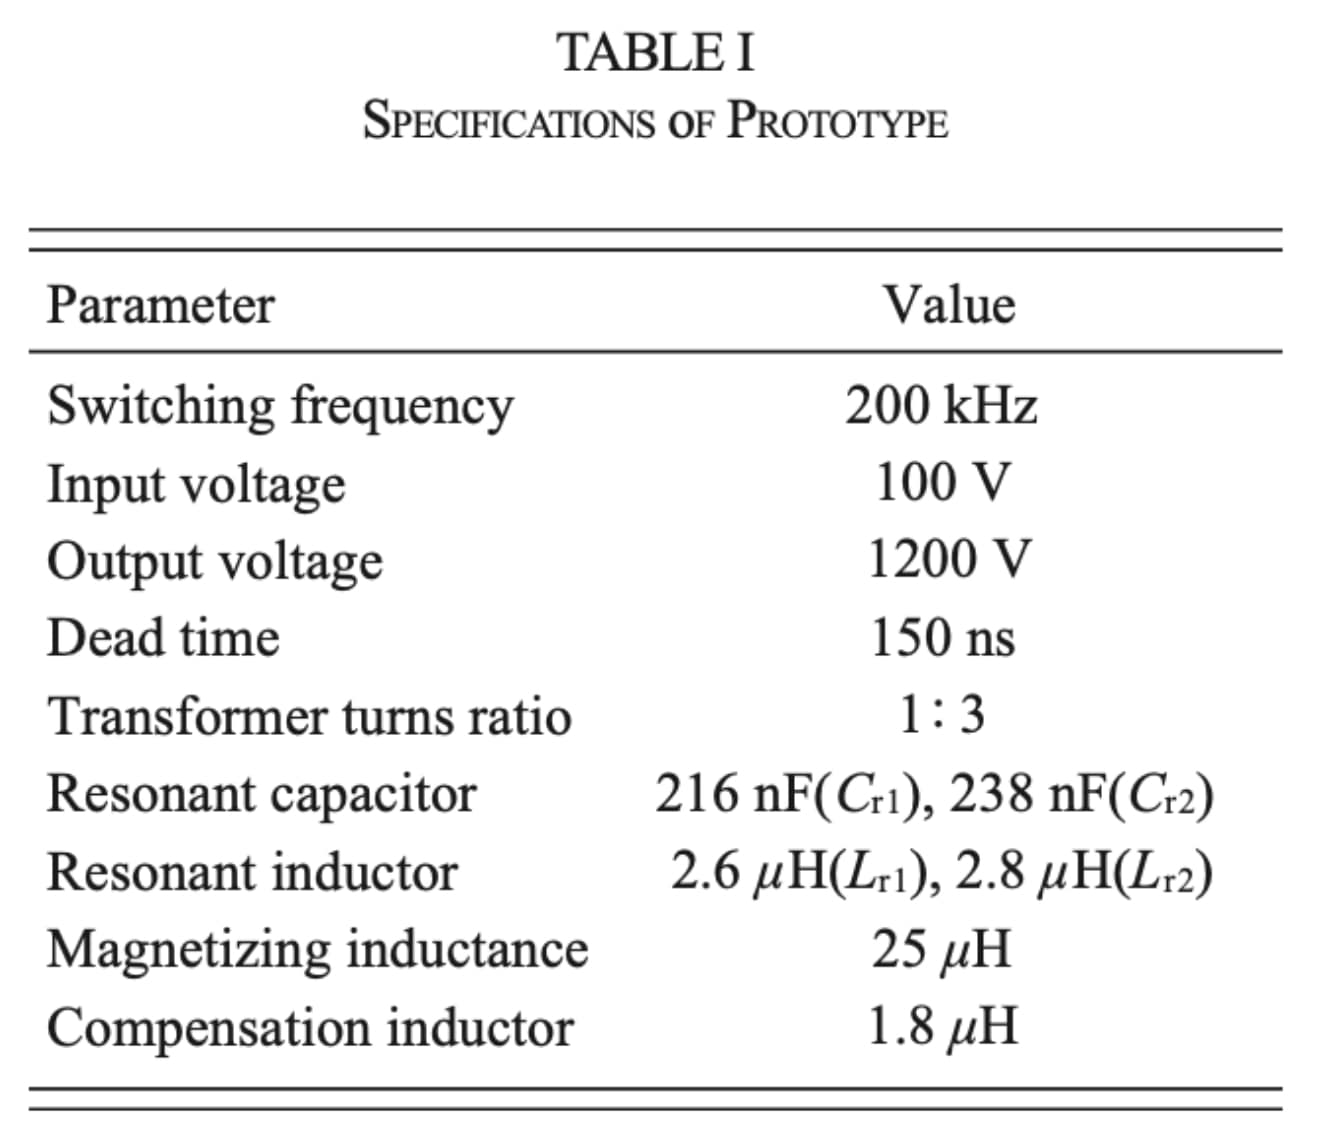 Table of propotype specifications